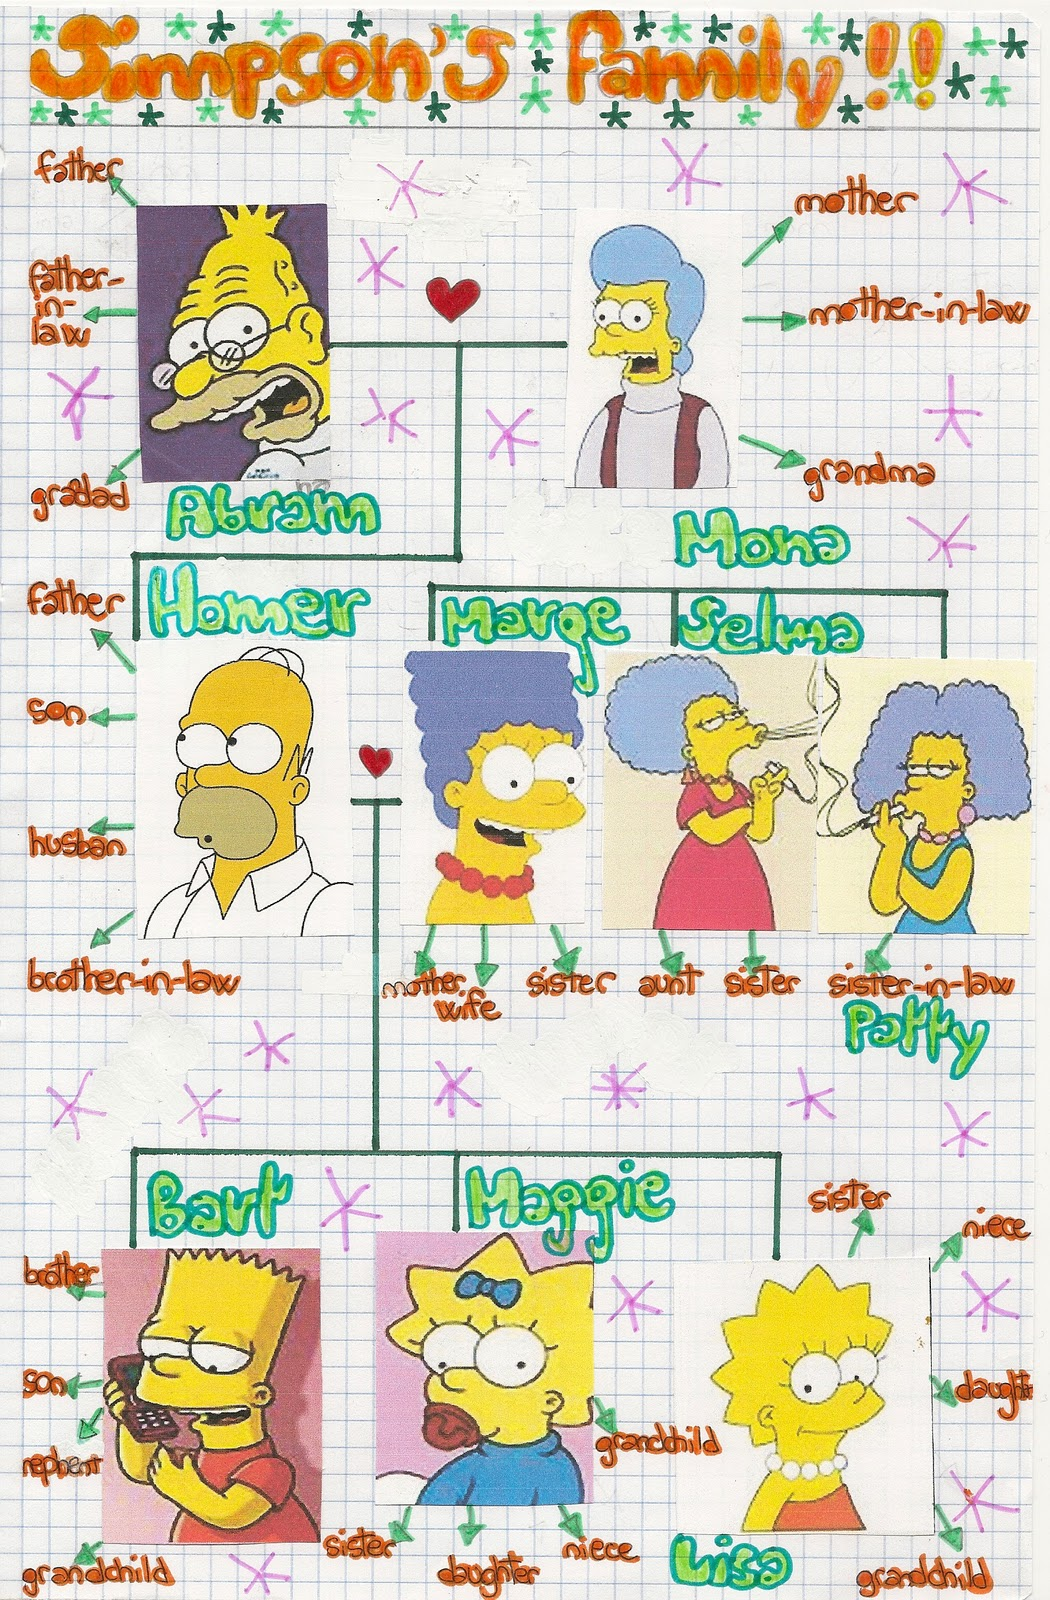 the Simpsons family tree: